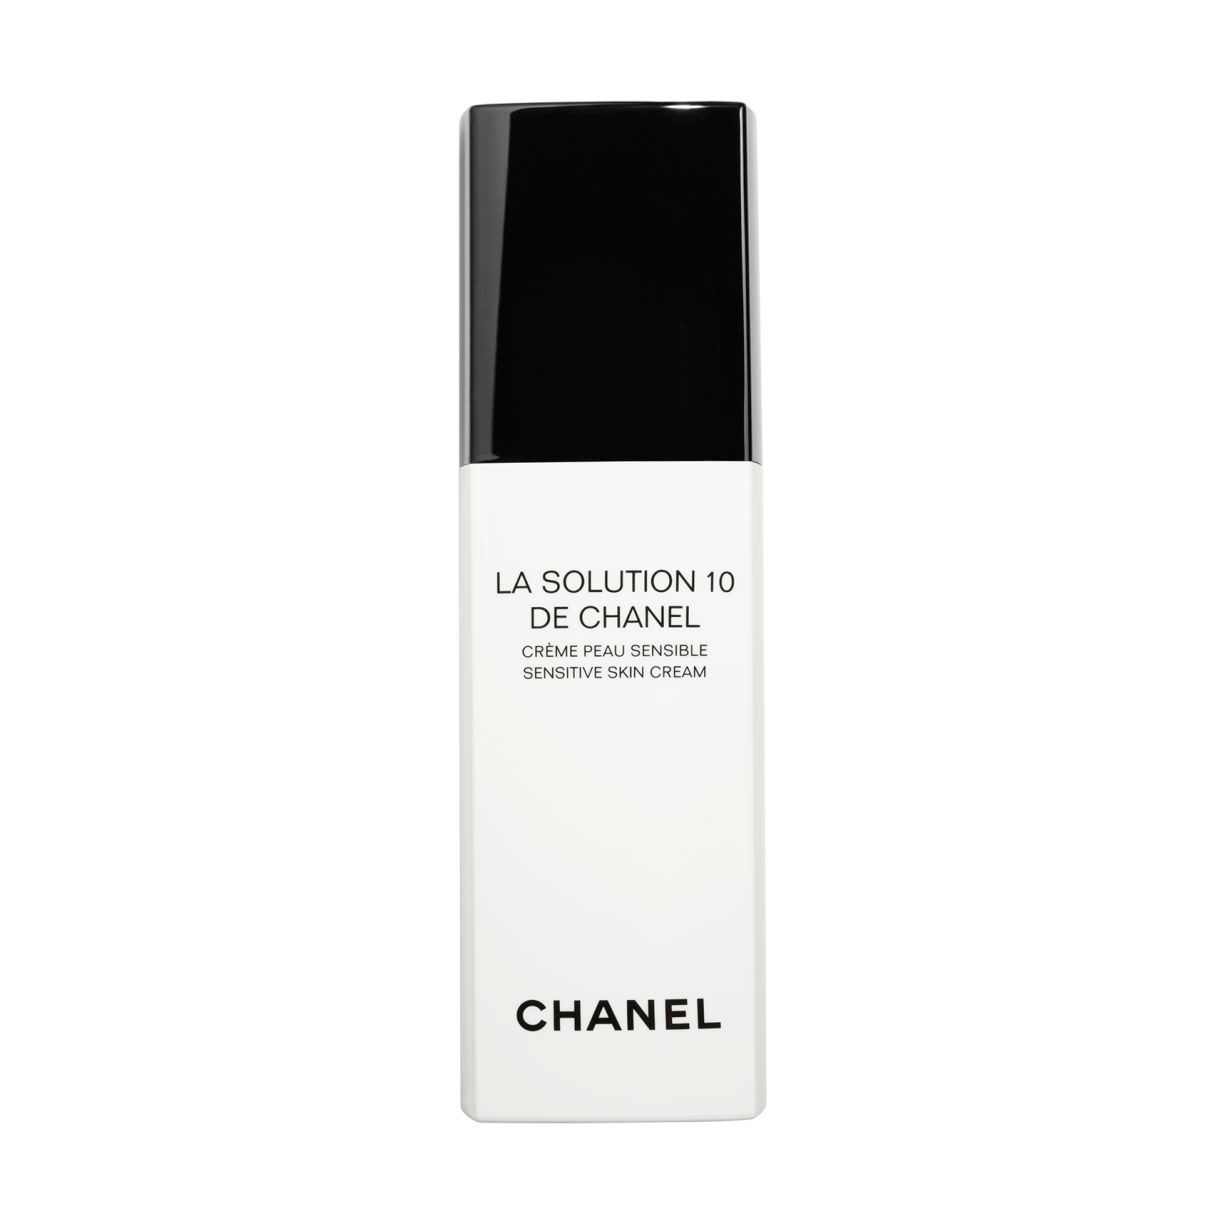 LA SOLUTION 10 DE CHANEL SENSITIVE SKIN CREAM PUMP BOTTLE 30ML